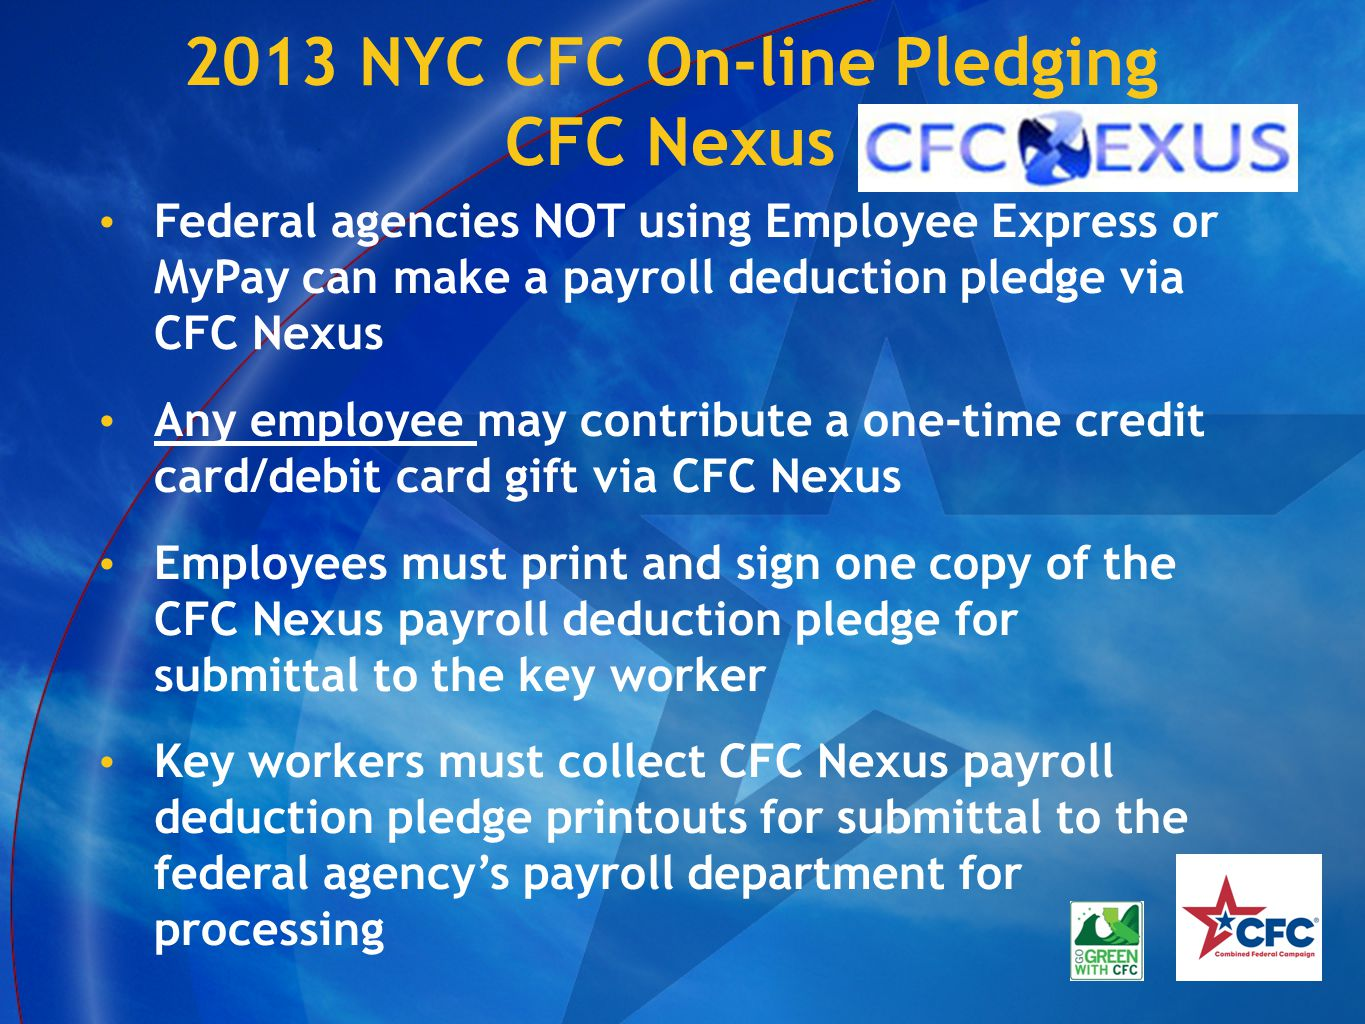 2013 NYC CFC On-line Pledging CFC Nexus Federal agencies NOT using Employee Express or MyPay can make a payroll deduction pledge via CFC Nexus Any employee may contribute a one-time credit card/debit card gift via CFC Nexus Employees must print and sign one copy of the CFC Nexus payroll deduction pledge for submittal to the key worker Key workers must collect CFC Nexus payroll deduction pledge printouts for submittal to the federal agency's payroll department for processing